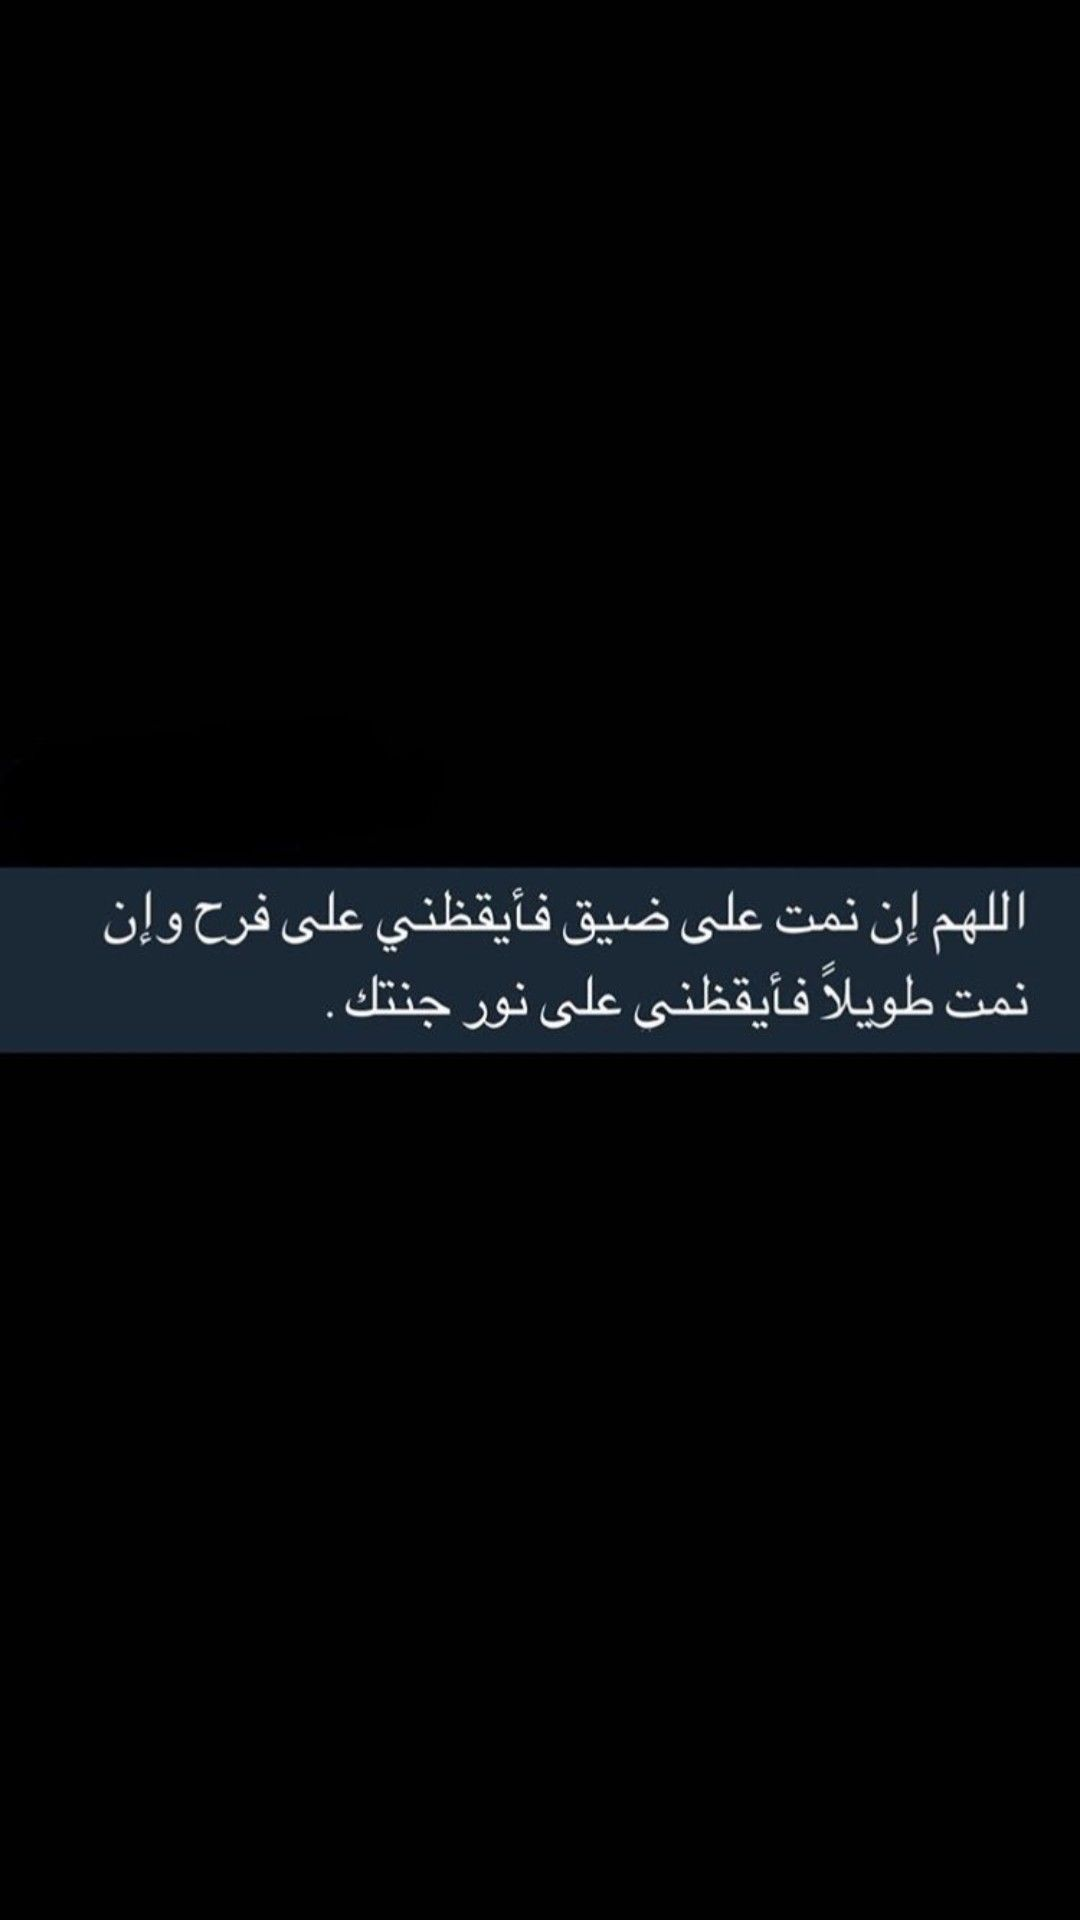 Pin By Elif On Qoutes Jokes Quotes Wonder Quotes Funny Arabic Quotes